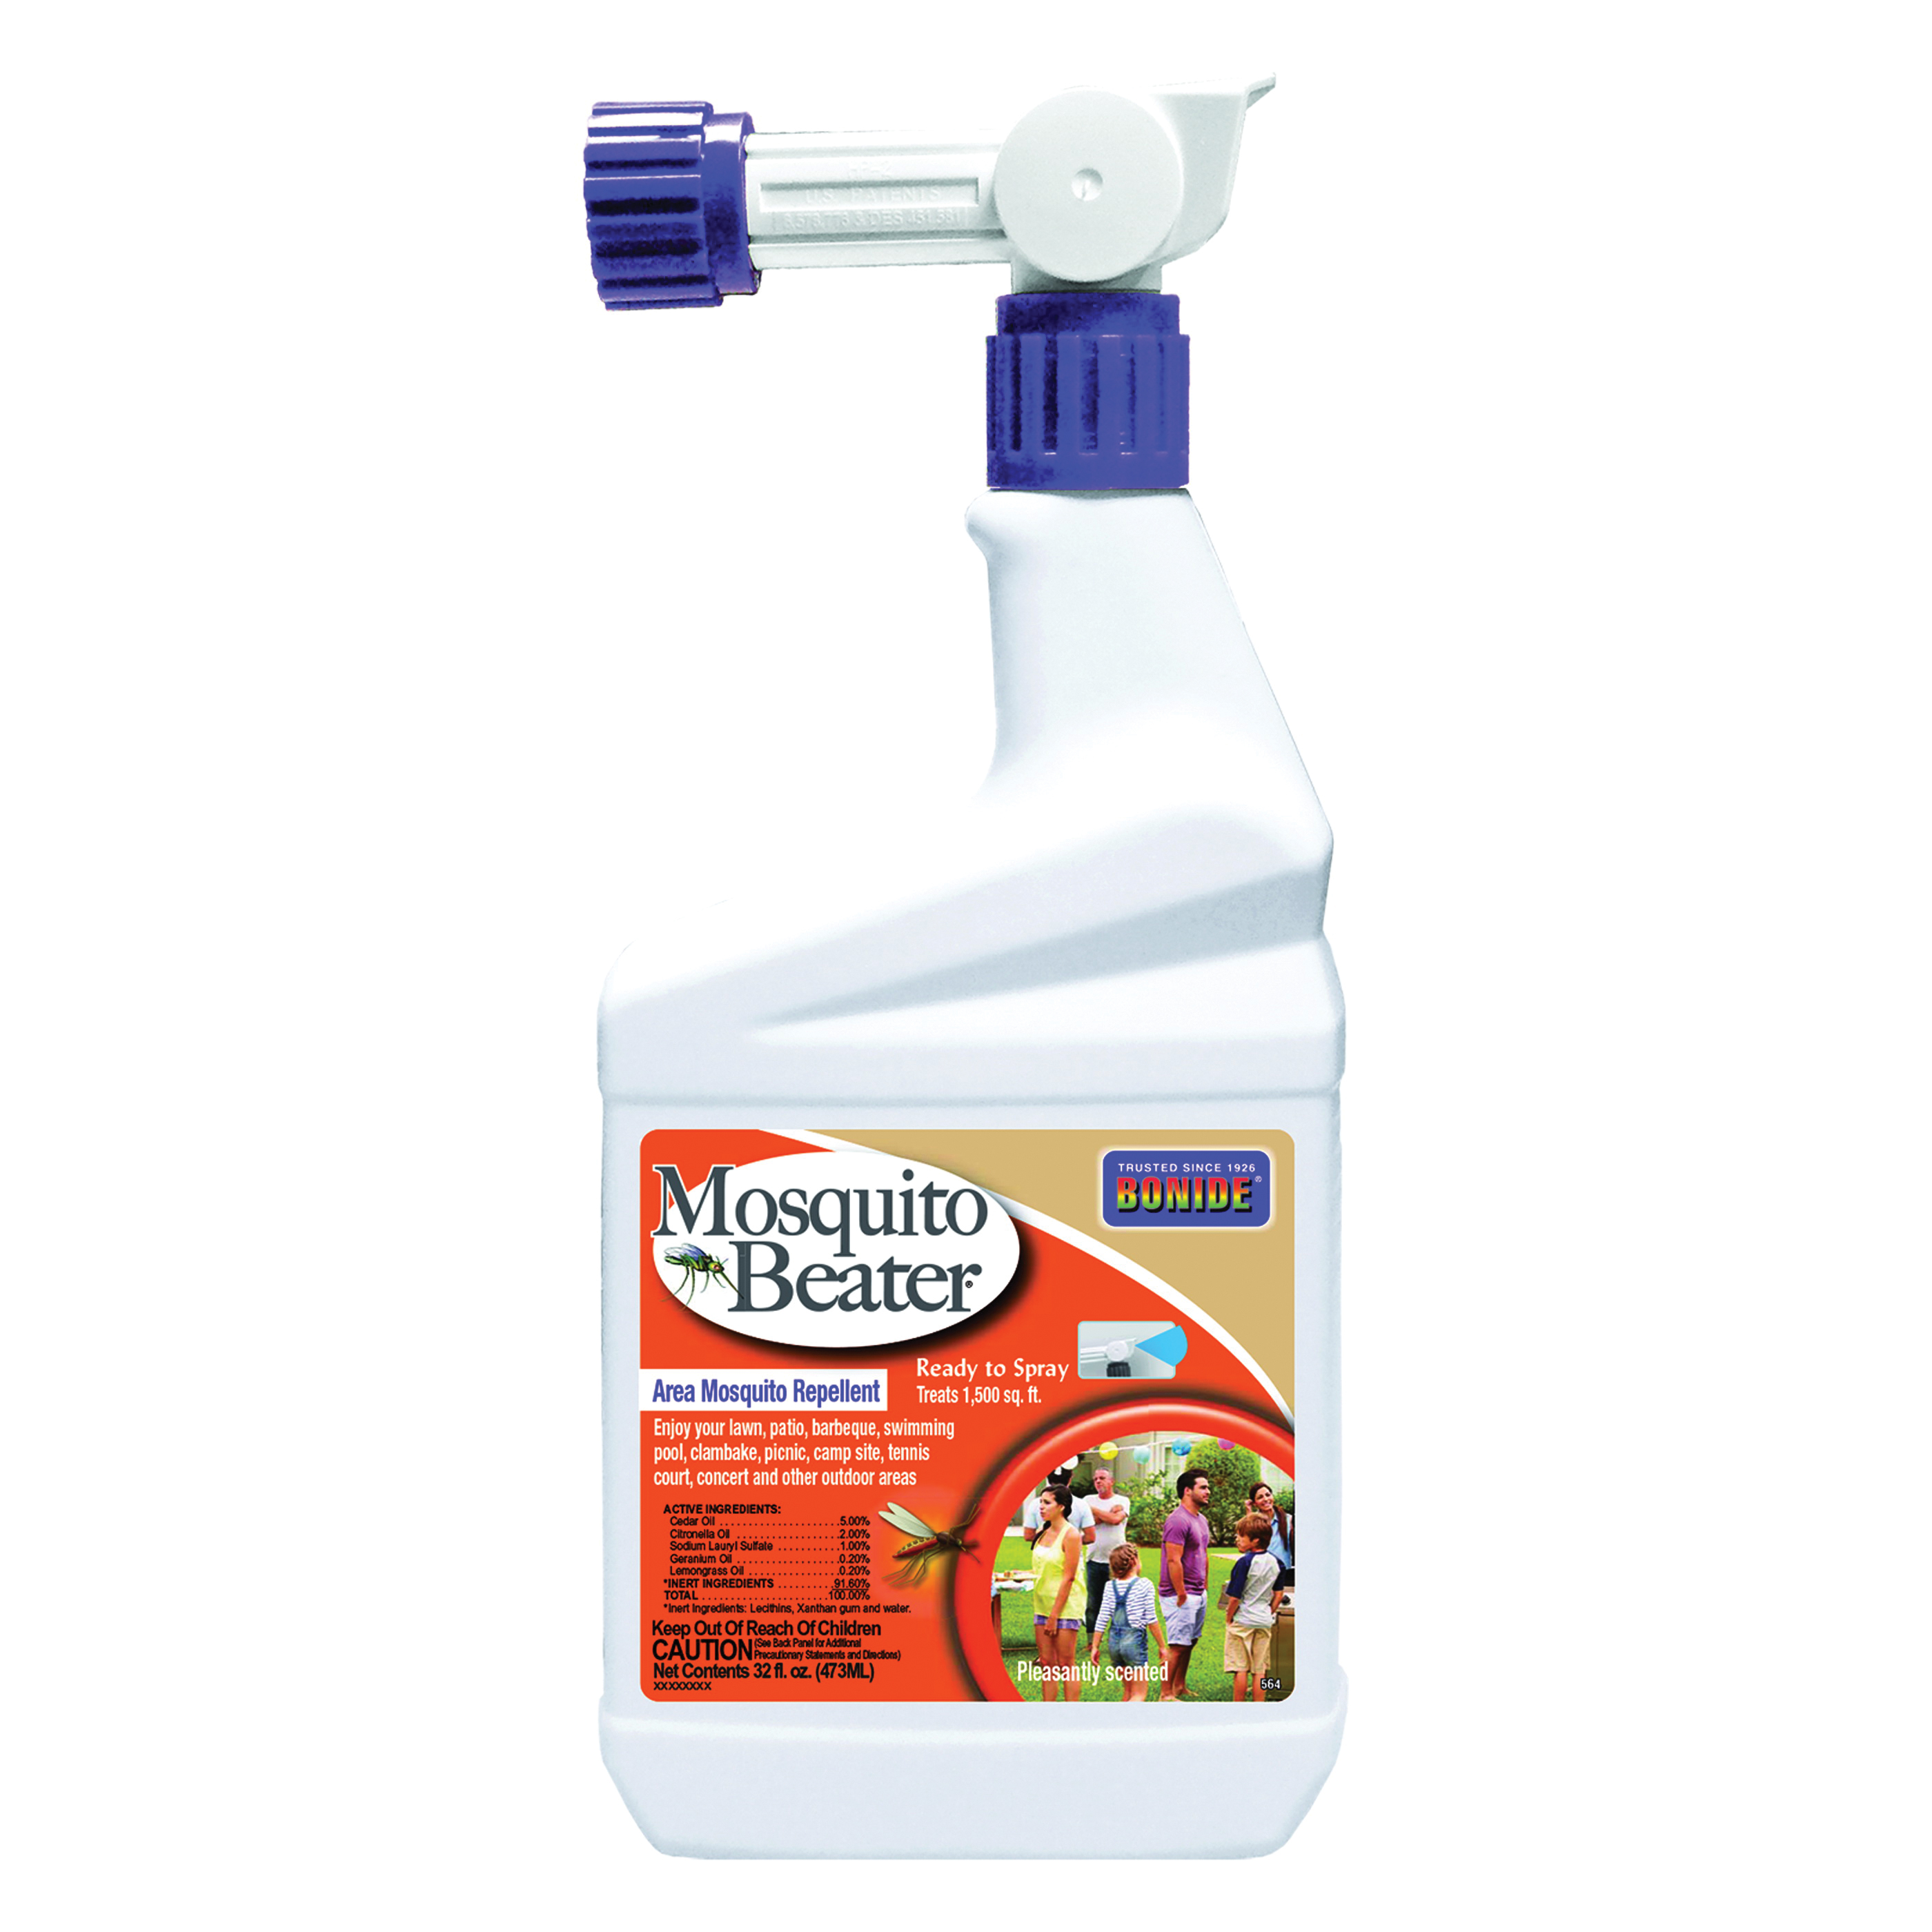 Picture of Mosquito Beater 564 Mosquito Beater Repellent, Liquid, Fragrant, Lemony, 1 qt Package